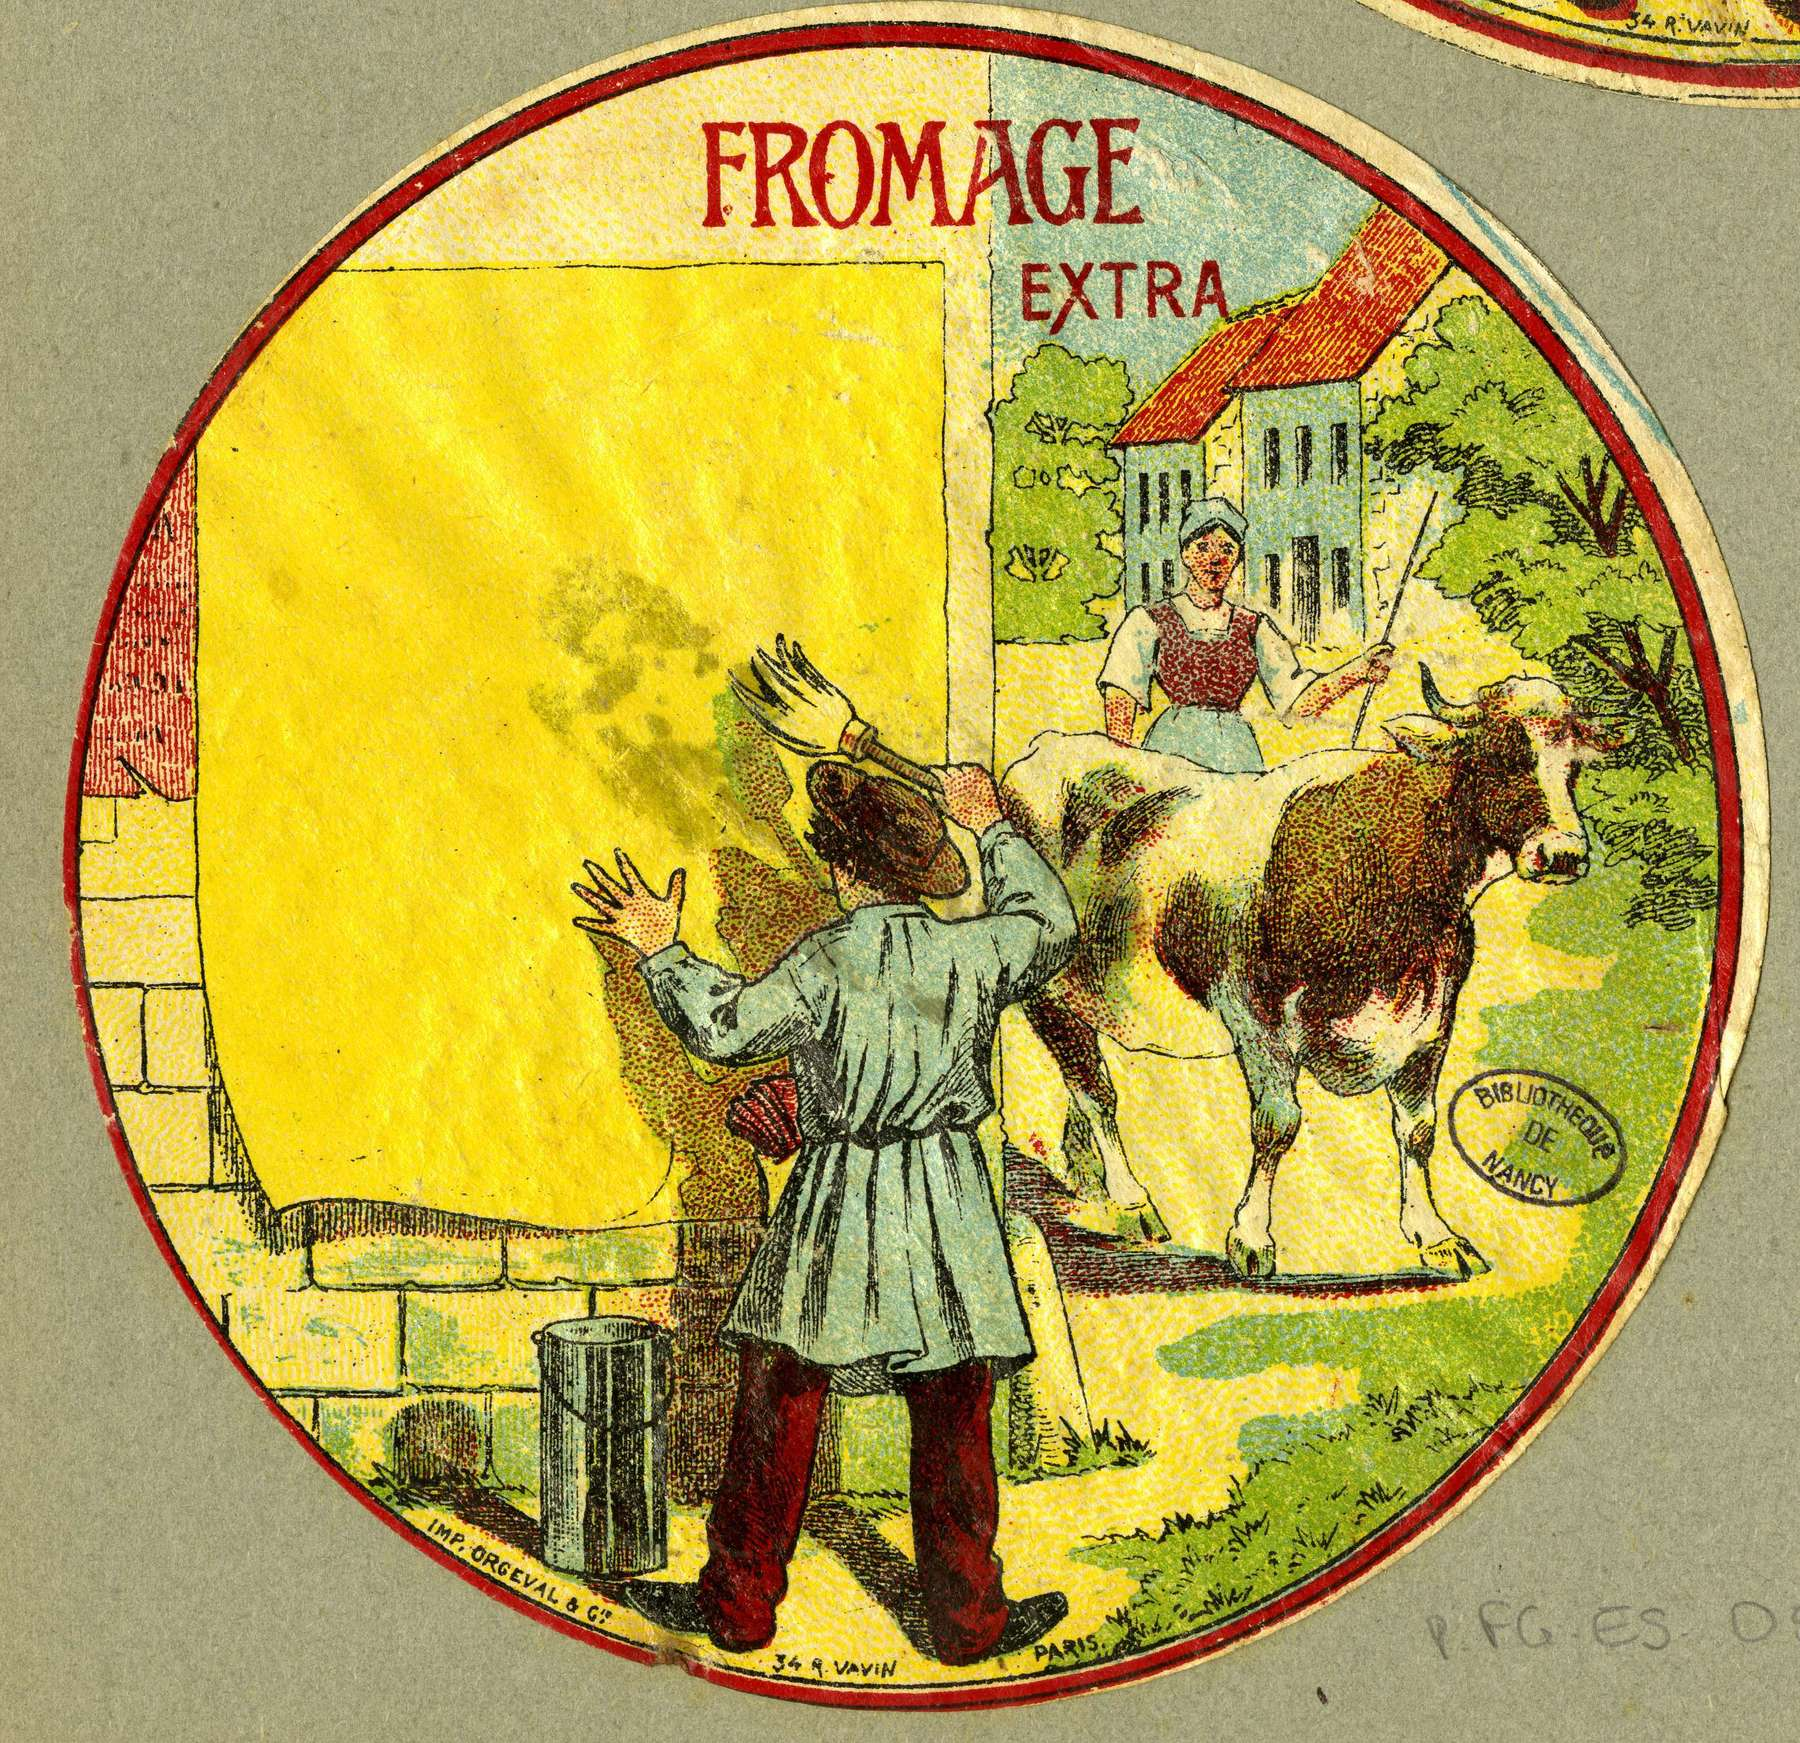 Contenu du Fromage extra